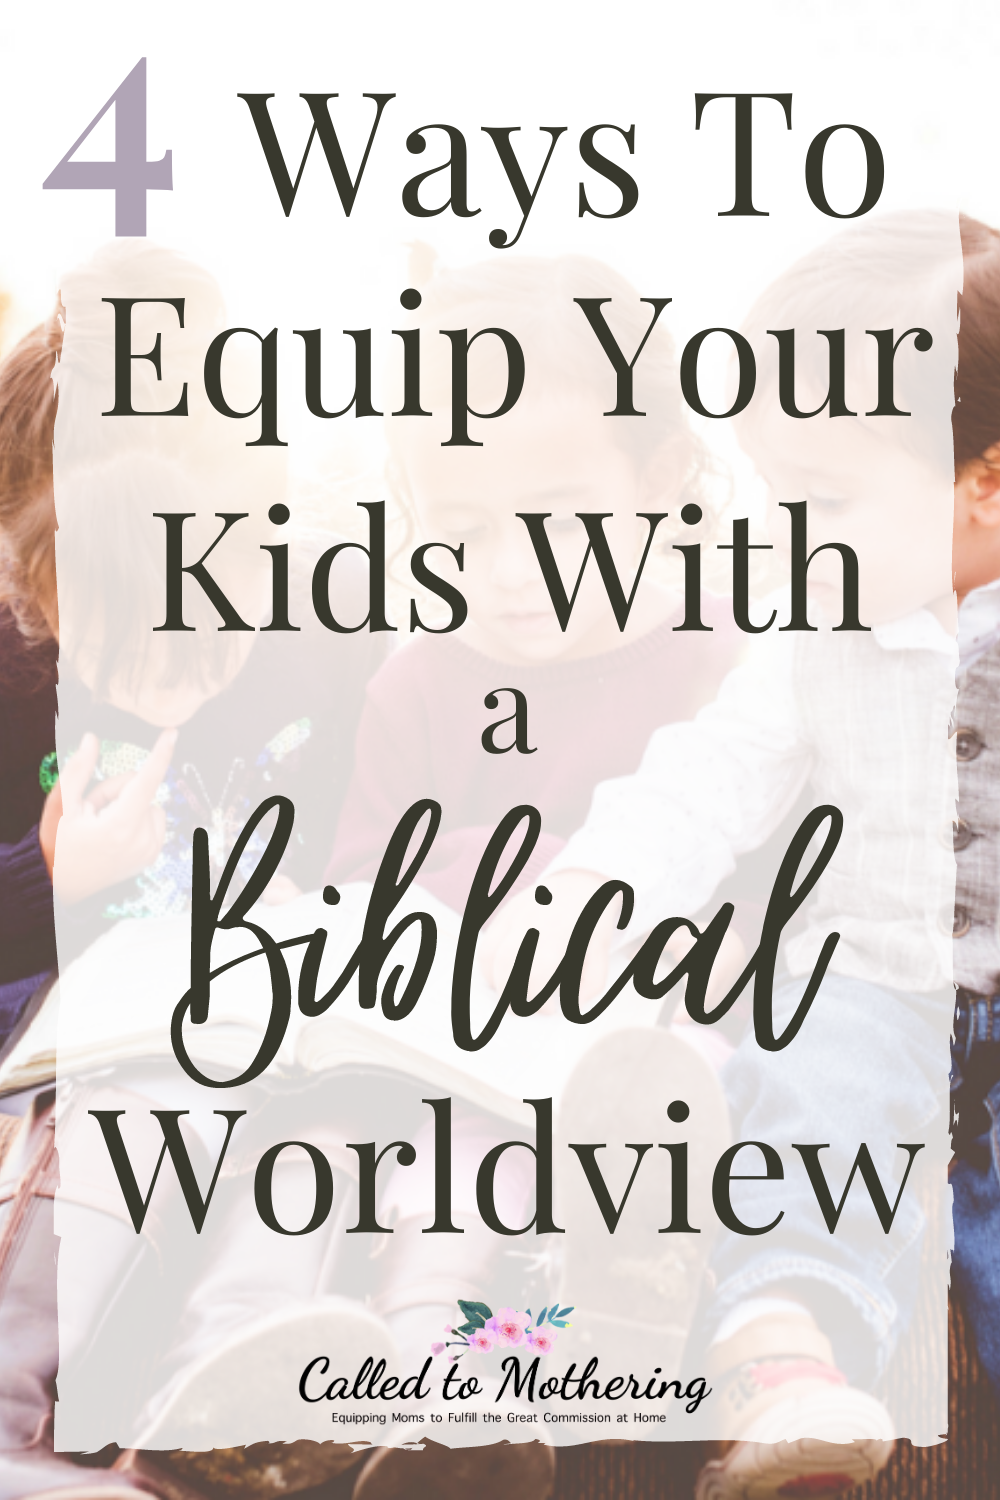 4 ways to intentionally equip your kids with the solid foundation of a biblical worldview. #christianparenting #raisinggodlykids #apologeticsforkids